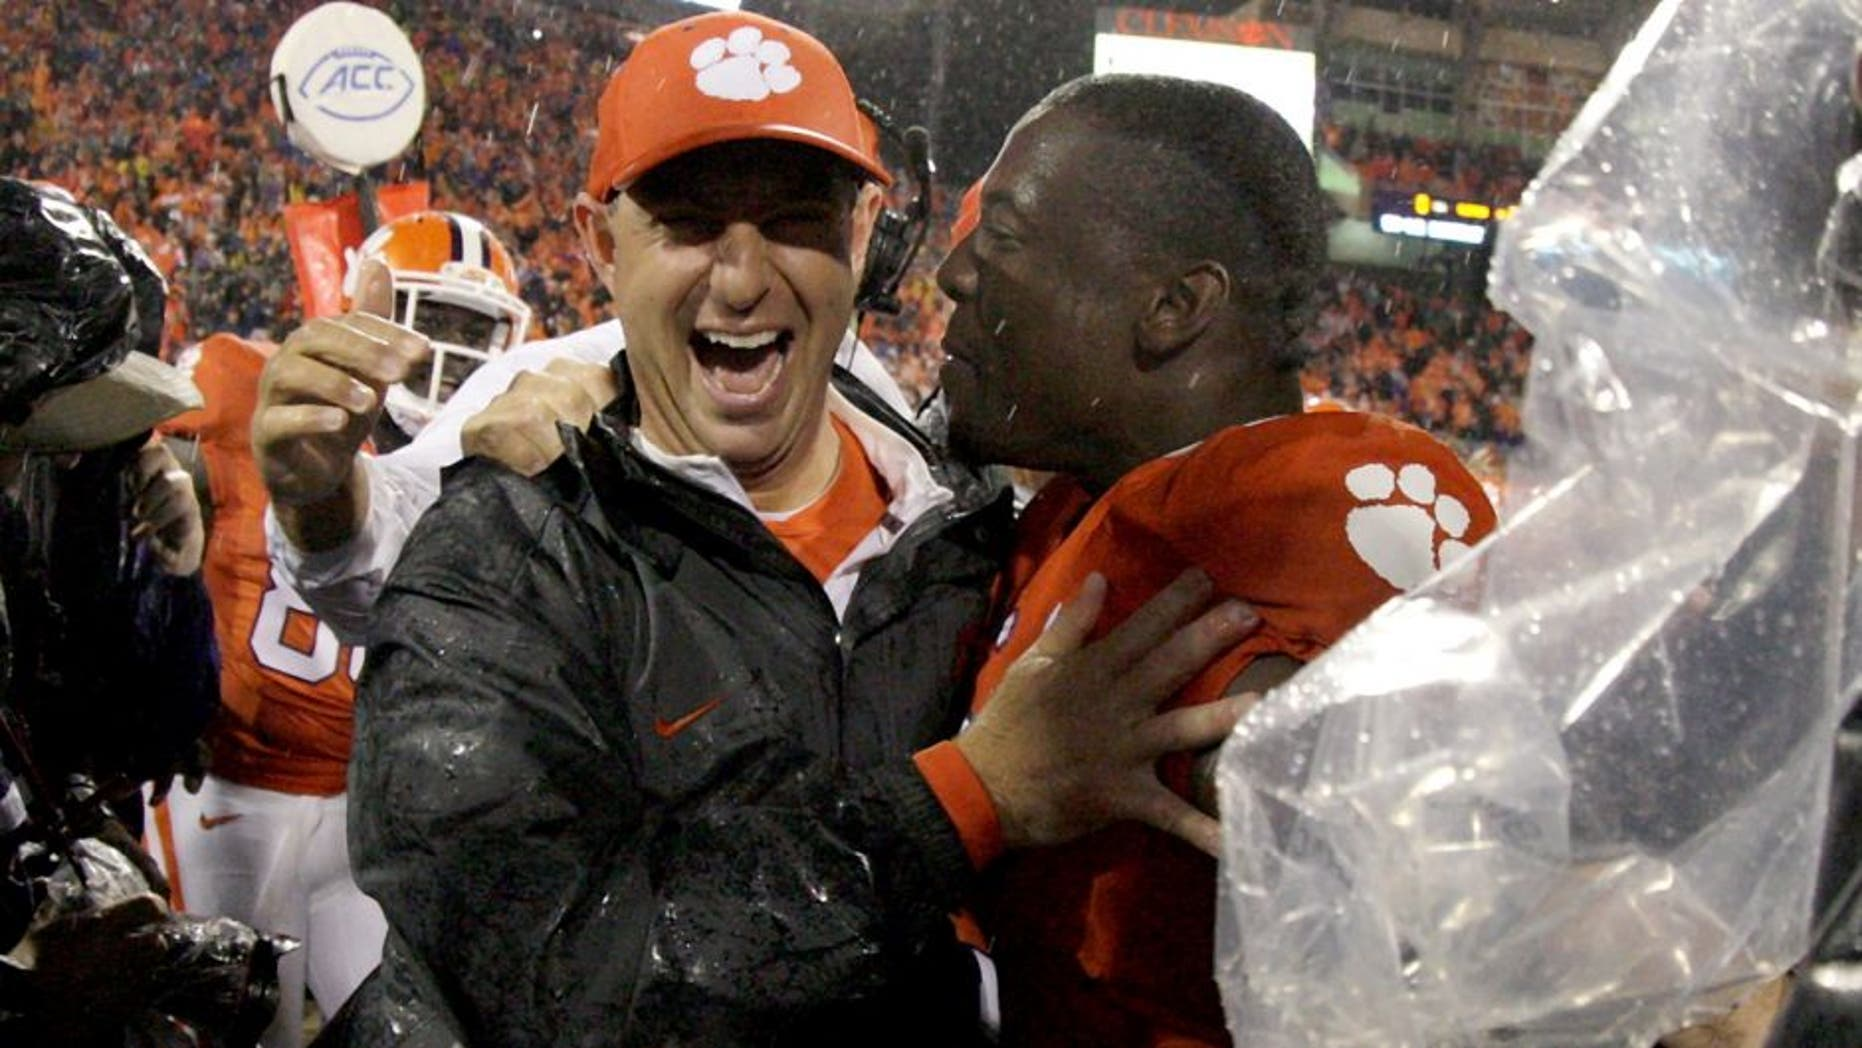 CLEMSON, SC - OCTOBER 3: Head Coach Dabo Swinney of the Cemson Tigers celebrates after defeating the Notre Dame Fighting Irish 24-22 at Clemson Memorial Stadium on October 3, 2015 in Clemson, South Carolina. (Photo by Tyler Smith/Getty Images)